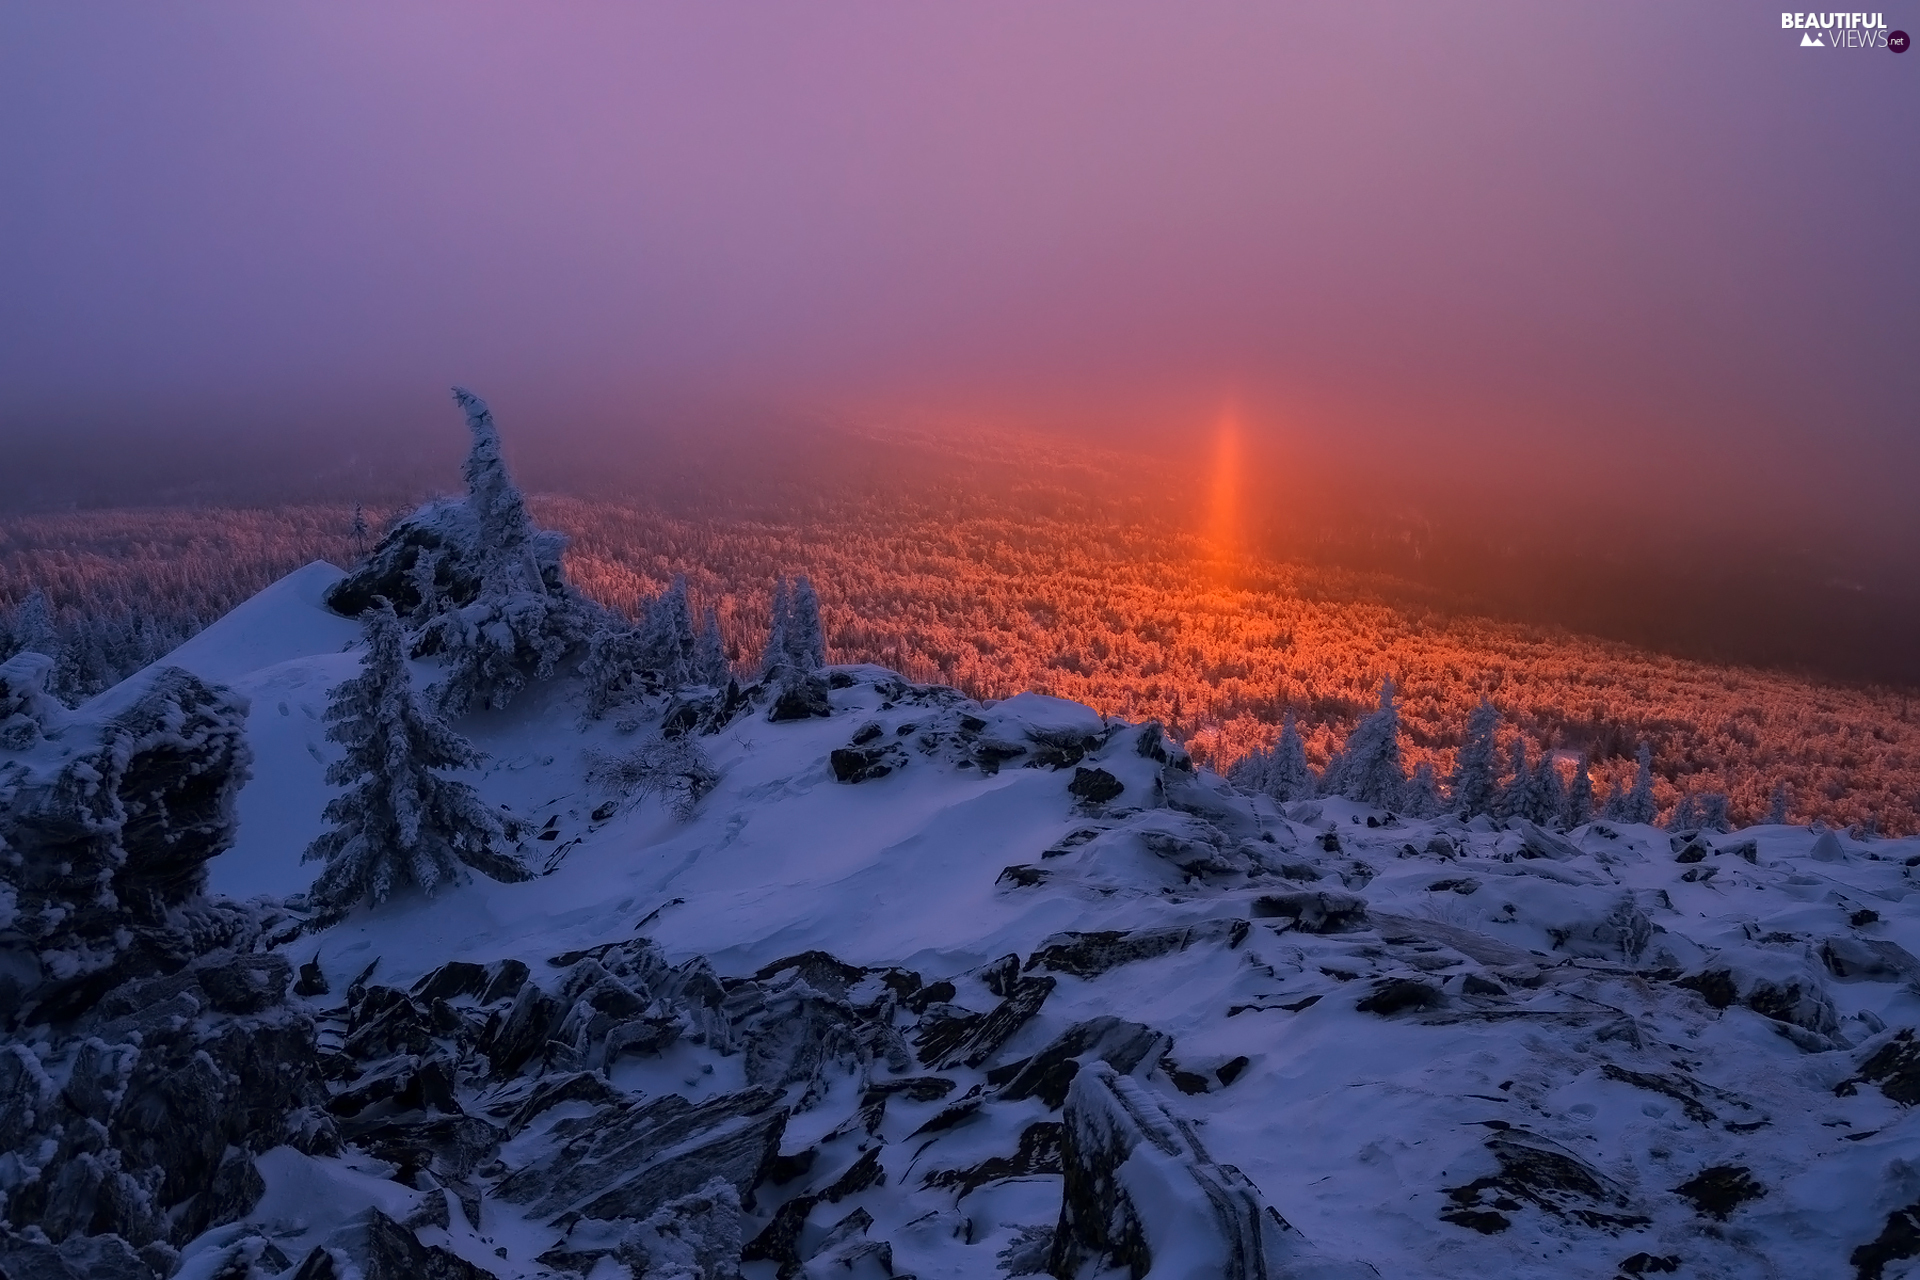 trees, Mountains, Great Sunsets, mount, winter, viewes, Fog